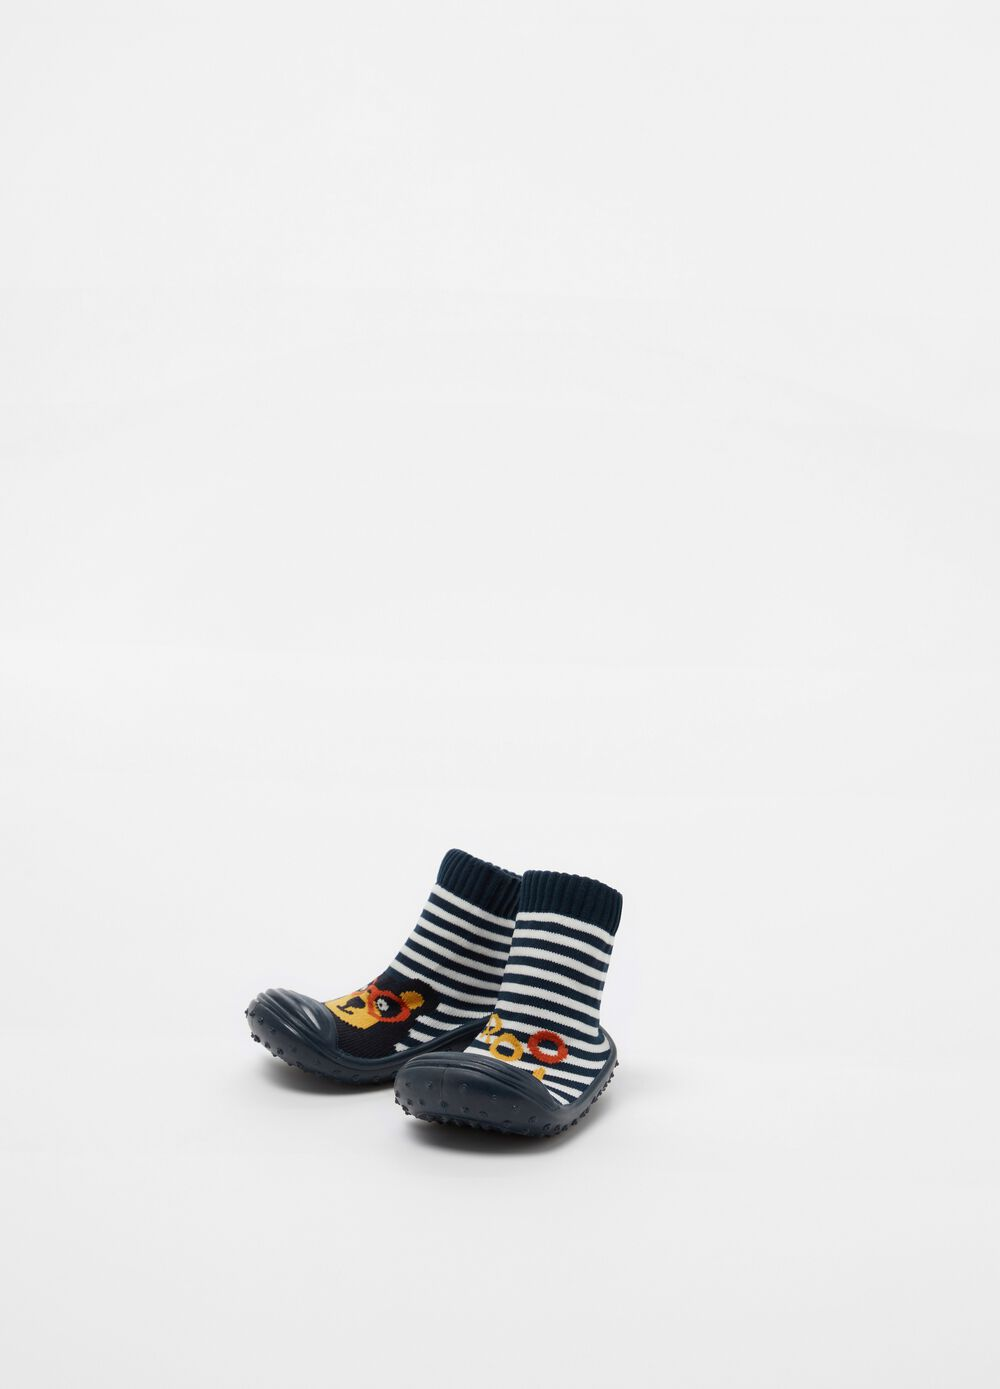 Sock slippers with striped pattern